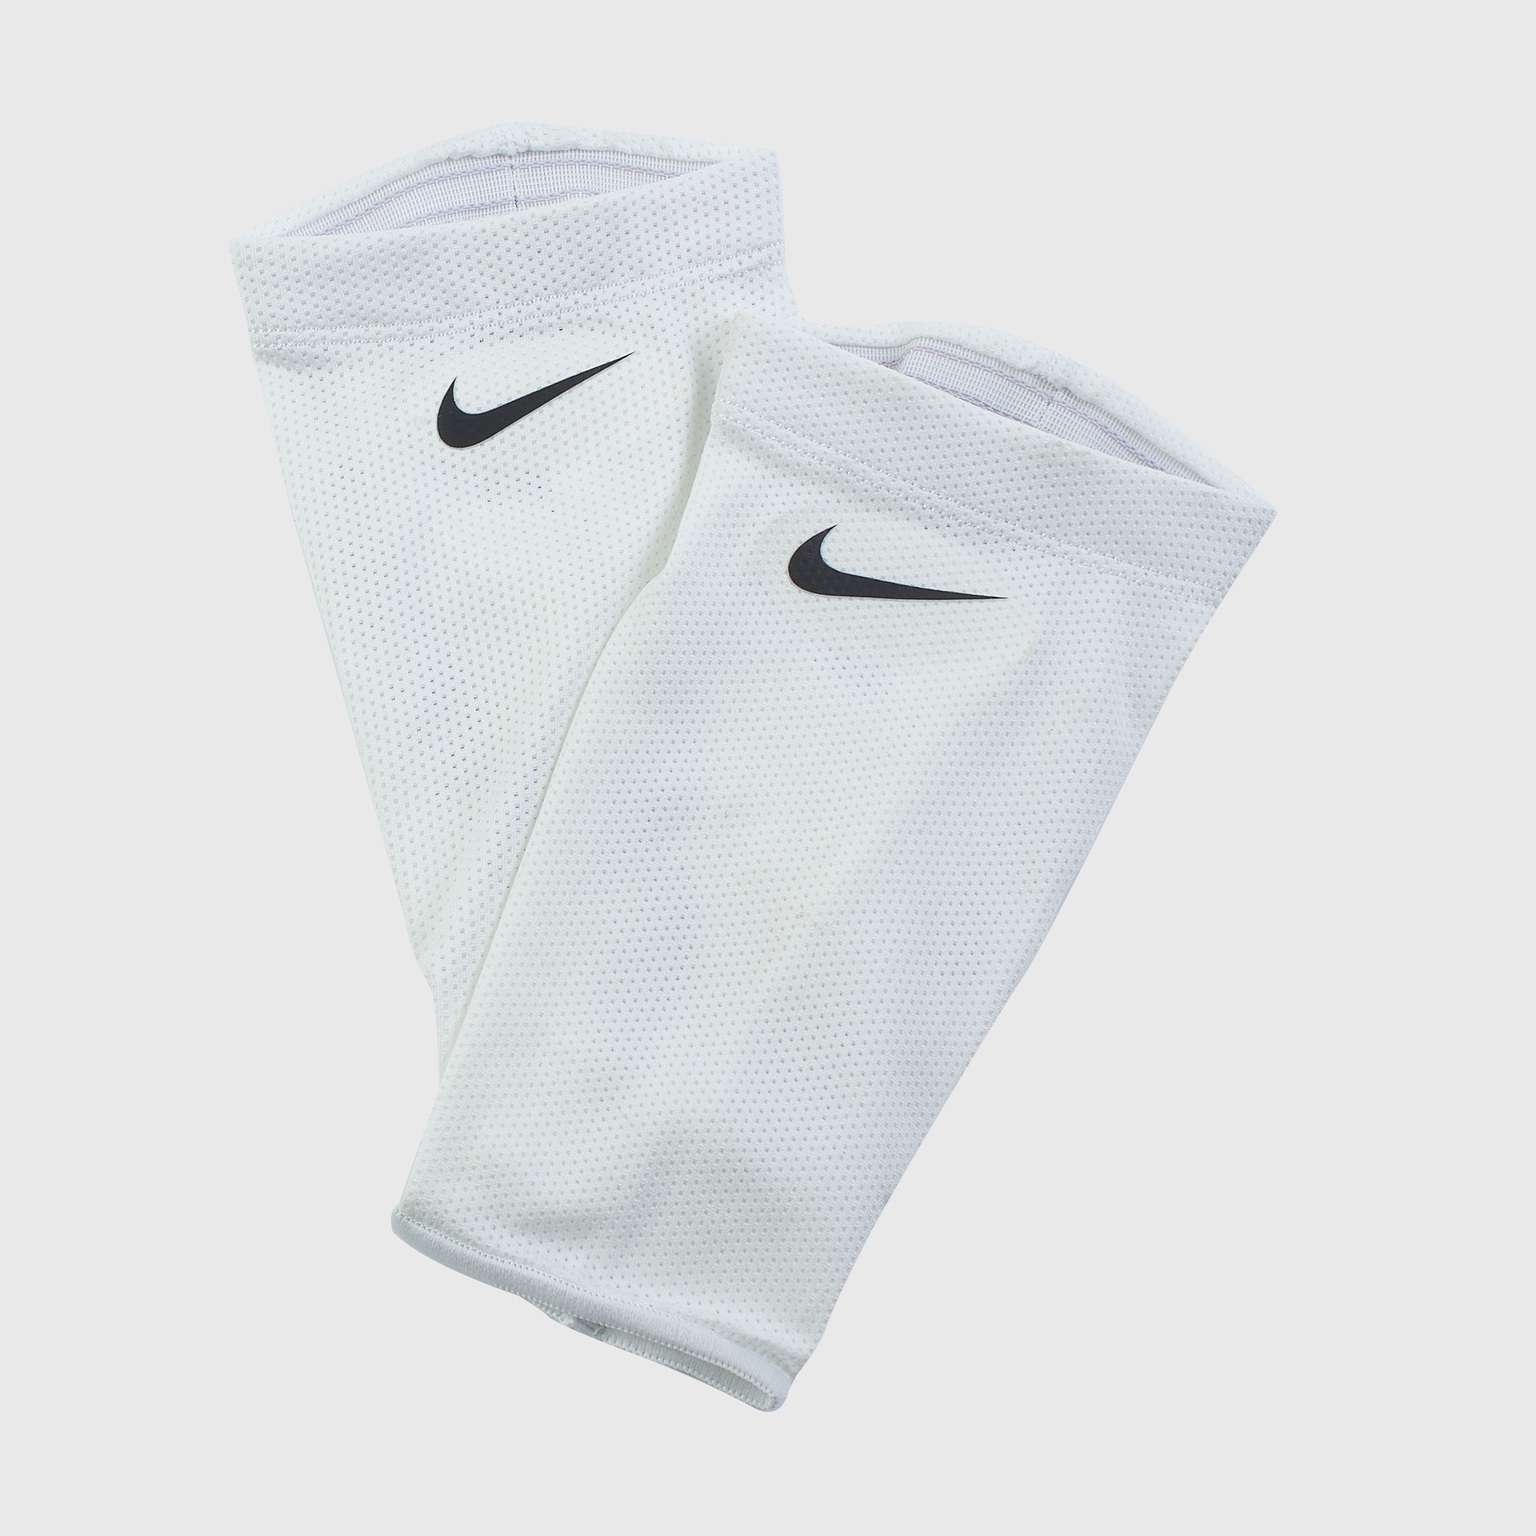 Чулок для щитков Nike Guard Lock Elite Sleeve SE0173-103